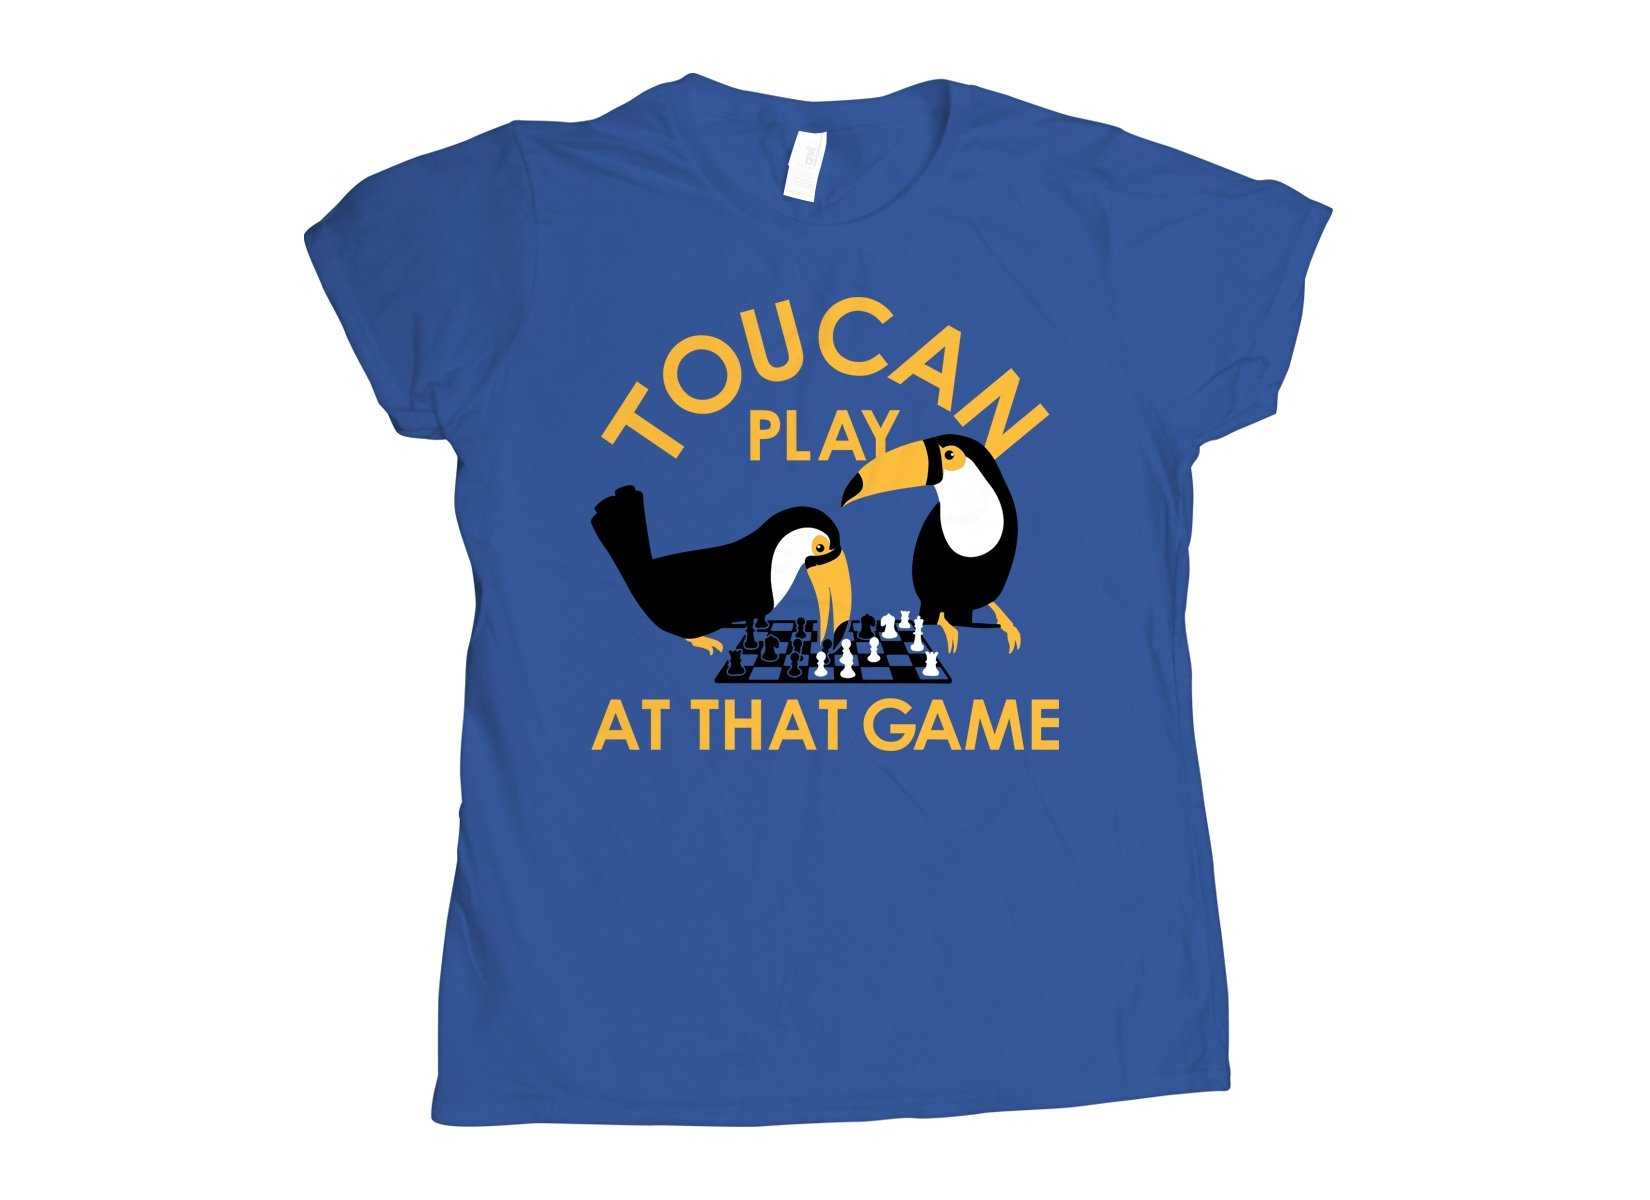 Toucan Play At That Game on Womens T-Shirt